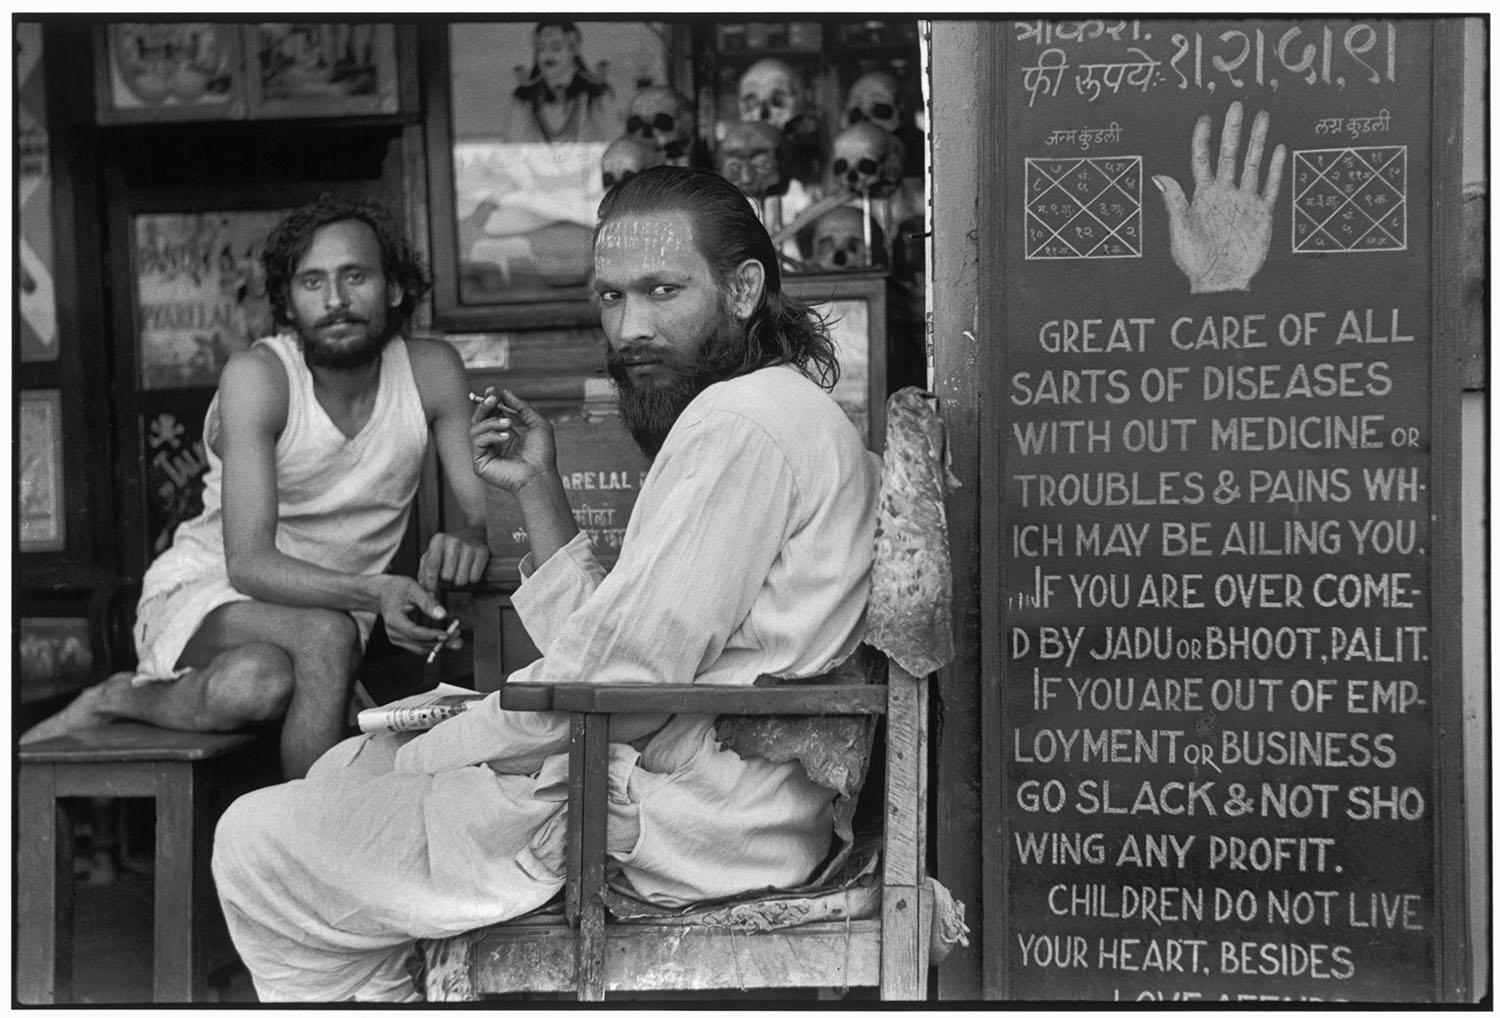 astrologer shop bombay black and white henri cartier-bresson